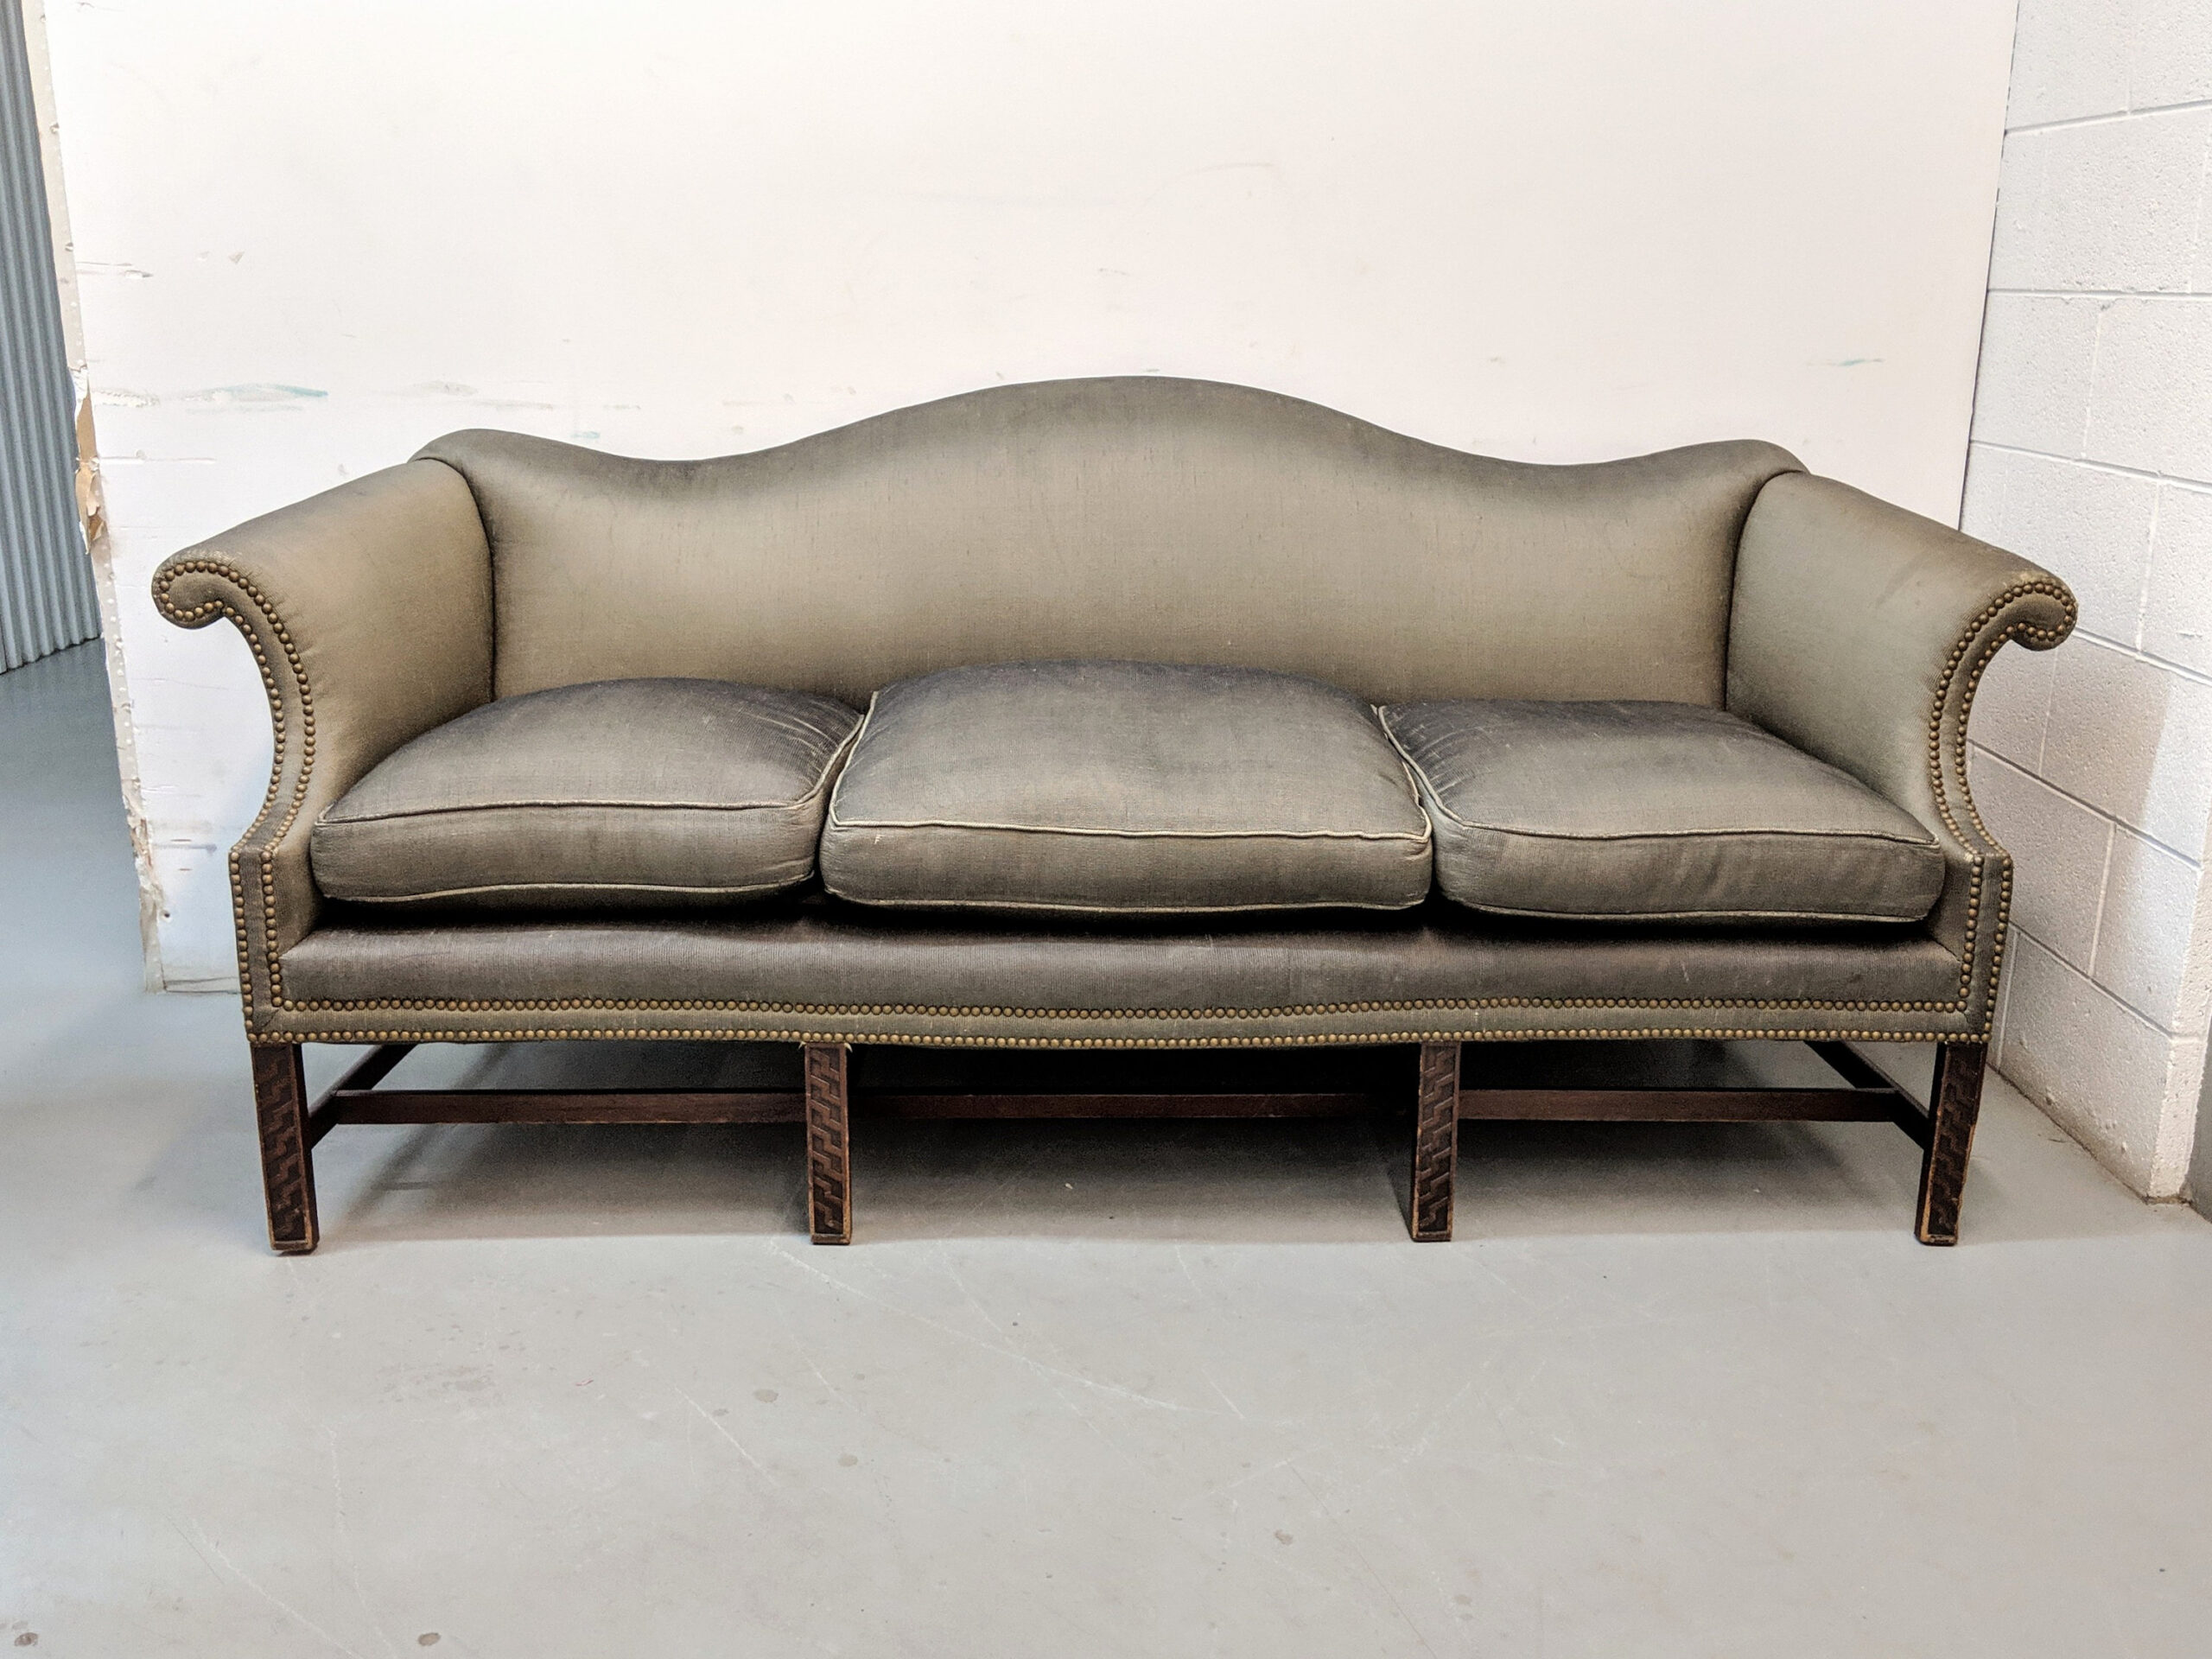 Full Size of Chippendale Sofa Furniture For Sale Uk Sofas Ethan Allen Cover Reproduction History Lane Table Style Slipcover Charcoal Gray Silk Camel Back Etsy Leinen Xxl Sofa Chippendale Sofa